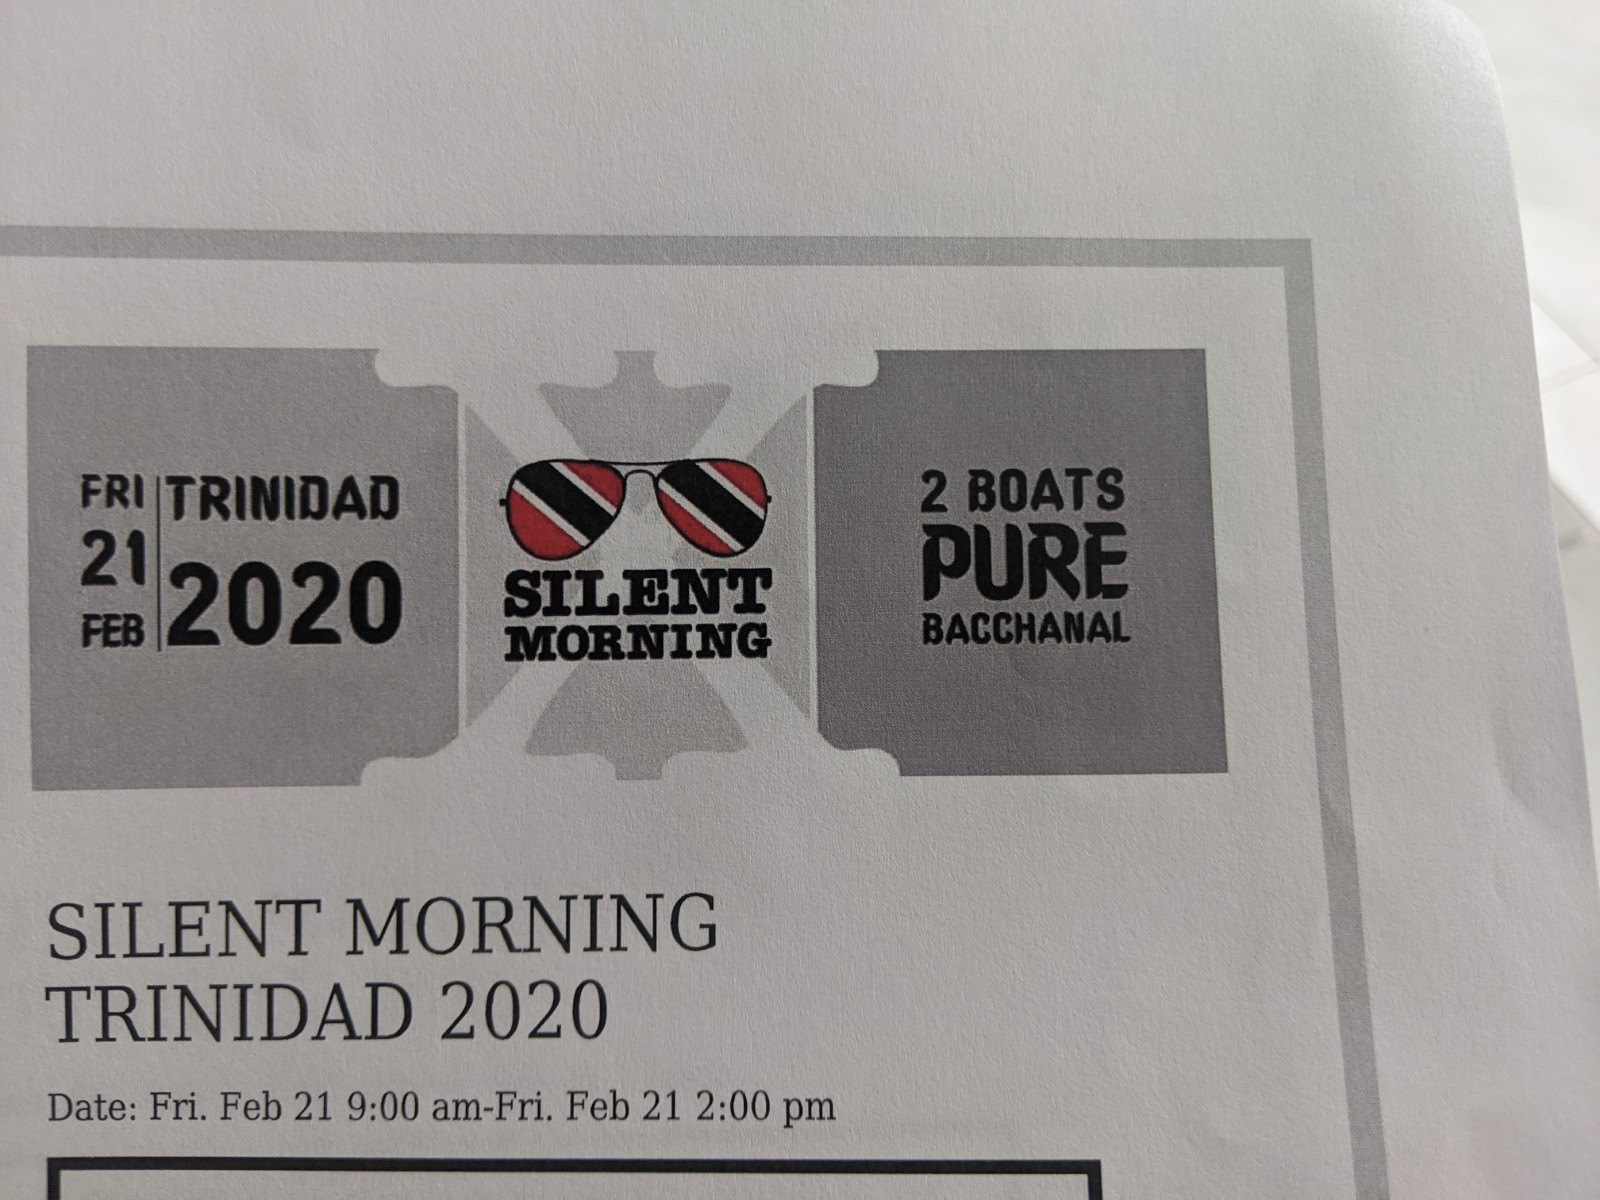 Silent Morning Trinidad 2020